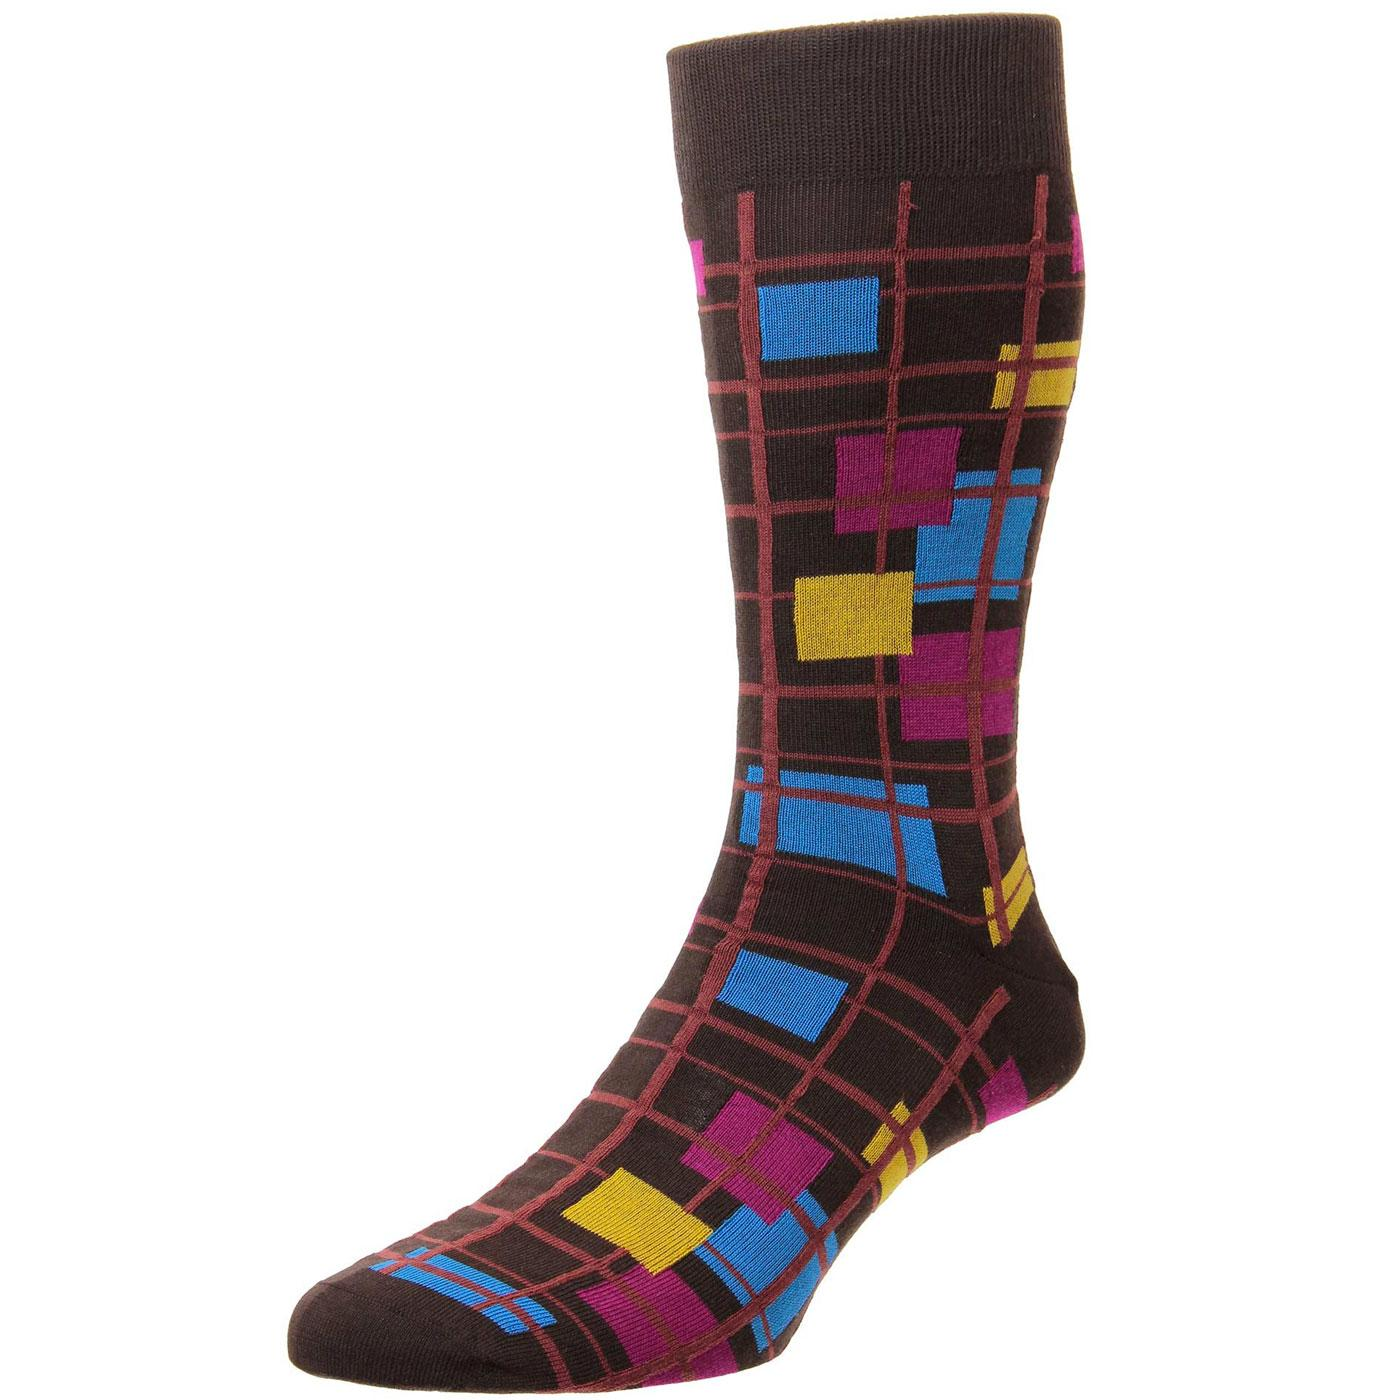 + Wright PANTHERELLA Mondrian Check Socks (Mocha)